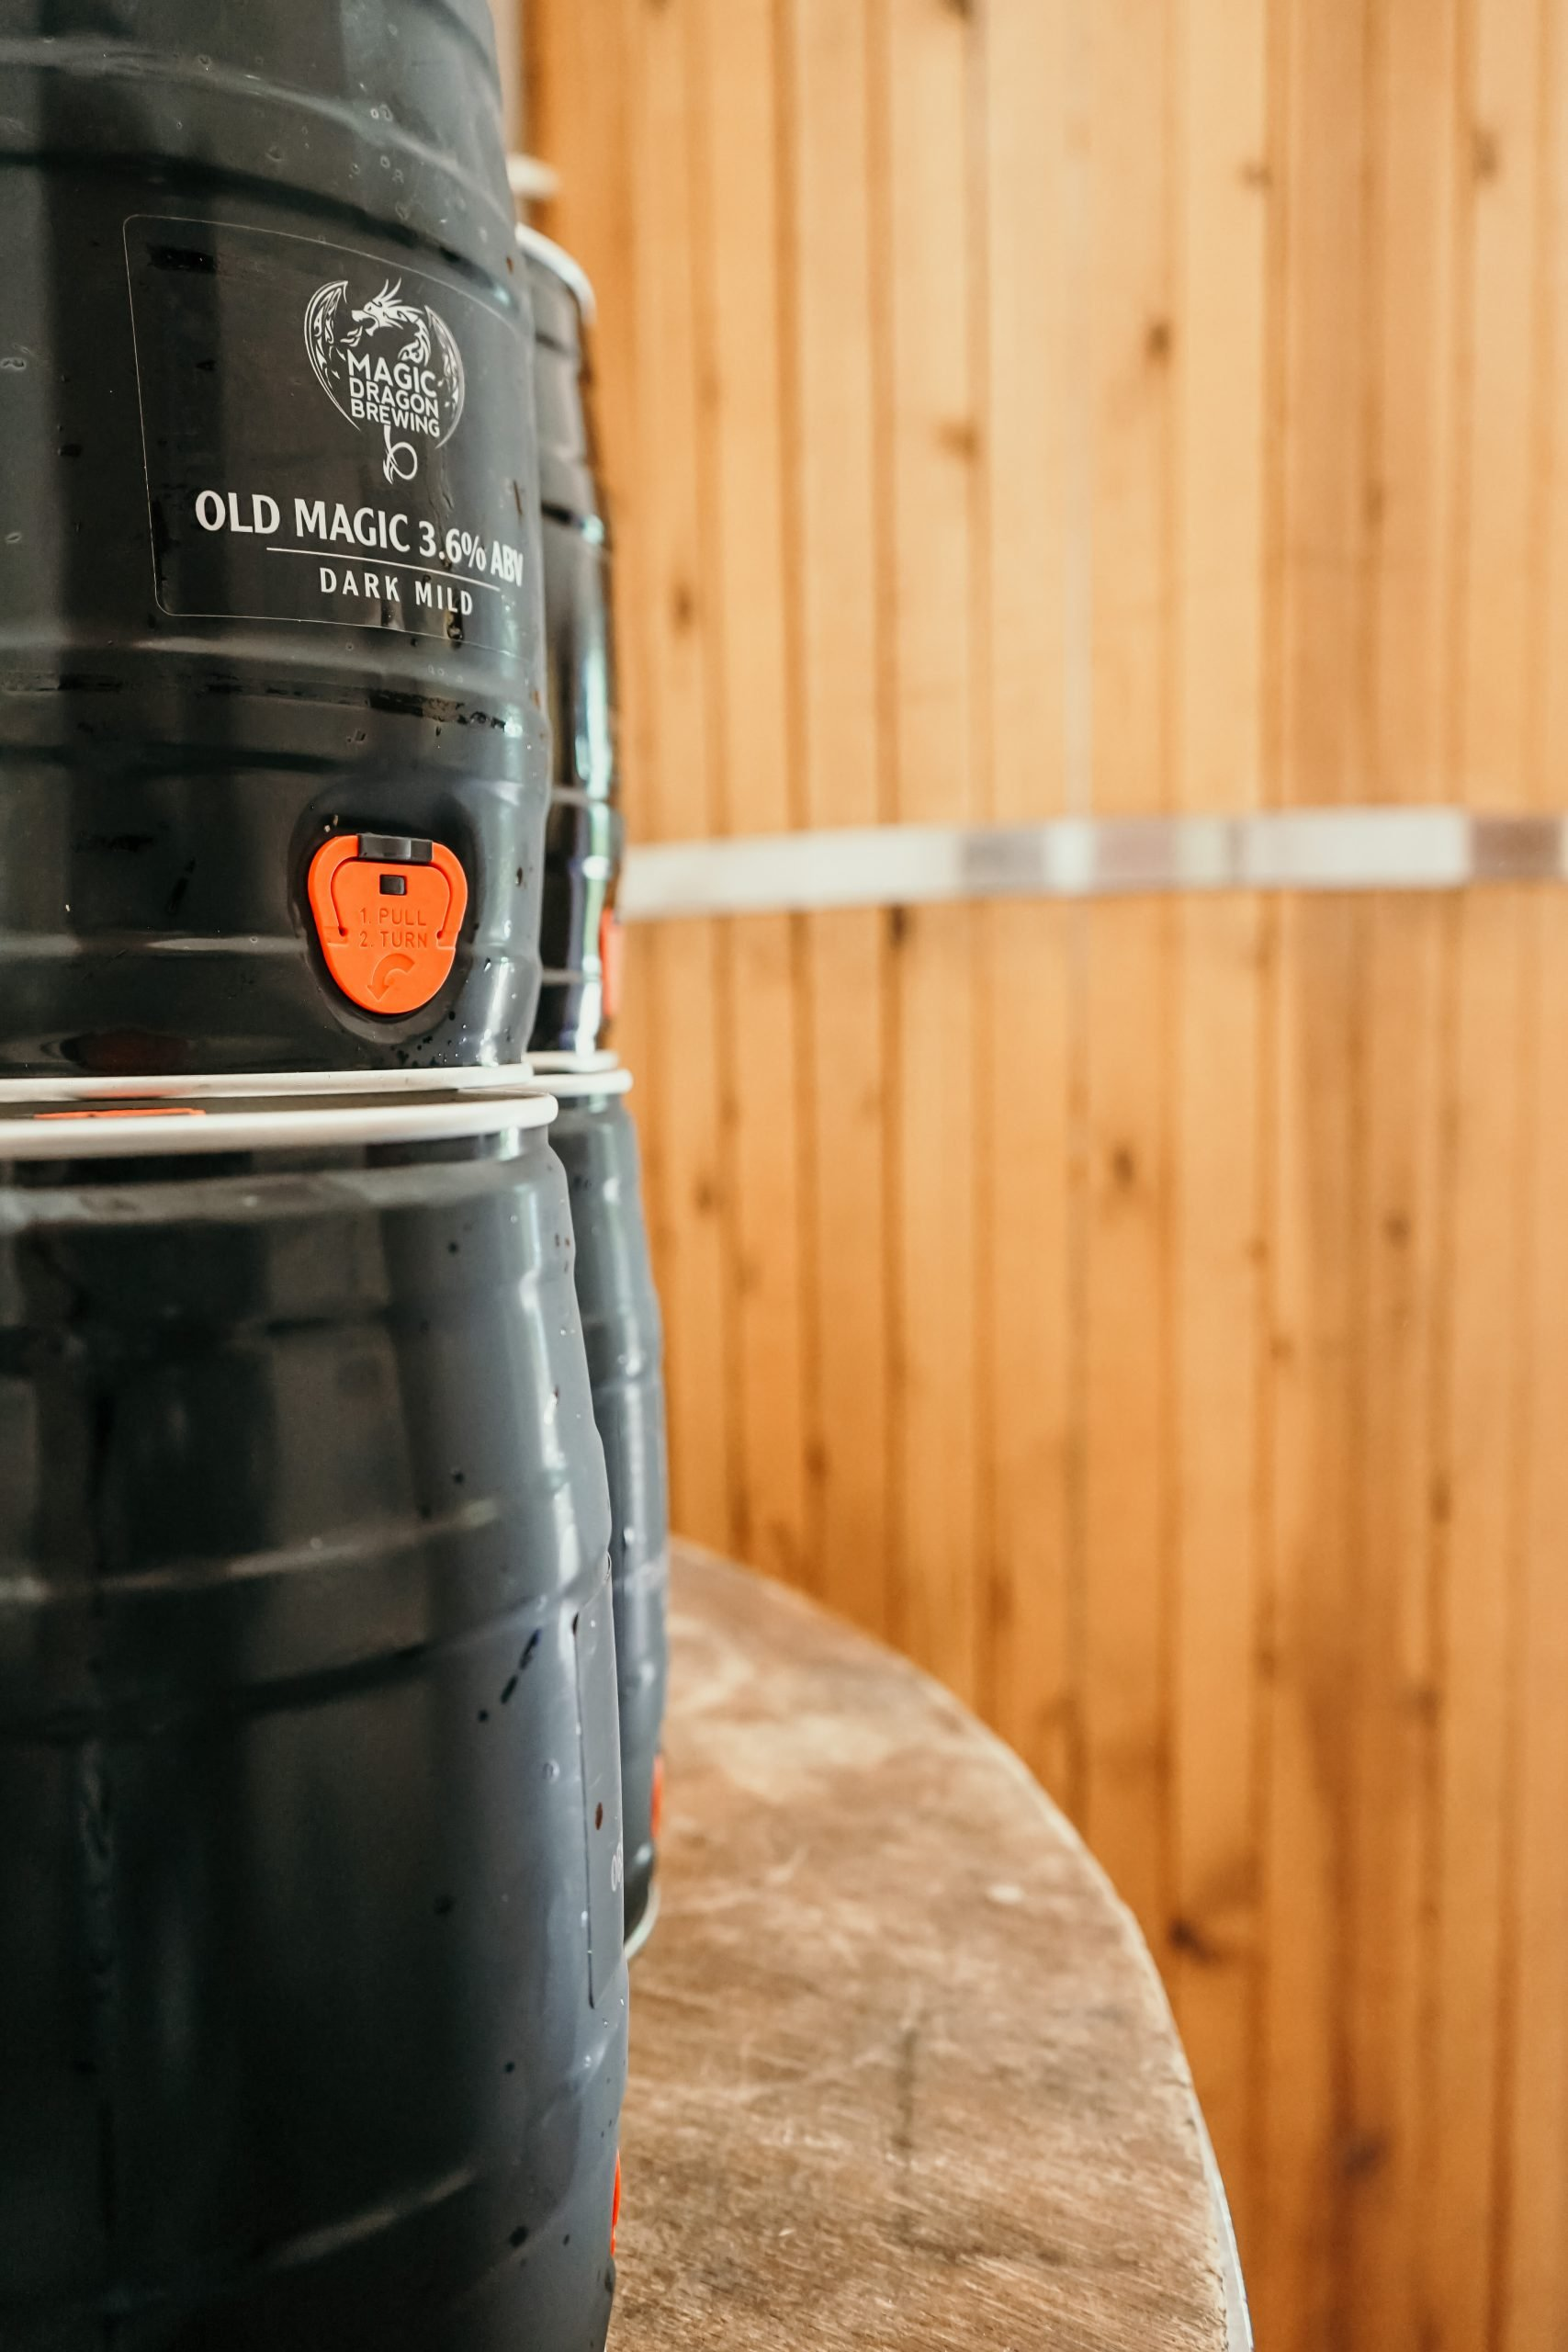 https://magicdragonbrewing.com/wp-content/uploads/2021/07/mini-kegs-in-brewery-scaled.jpg